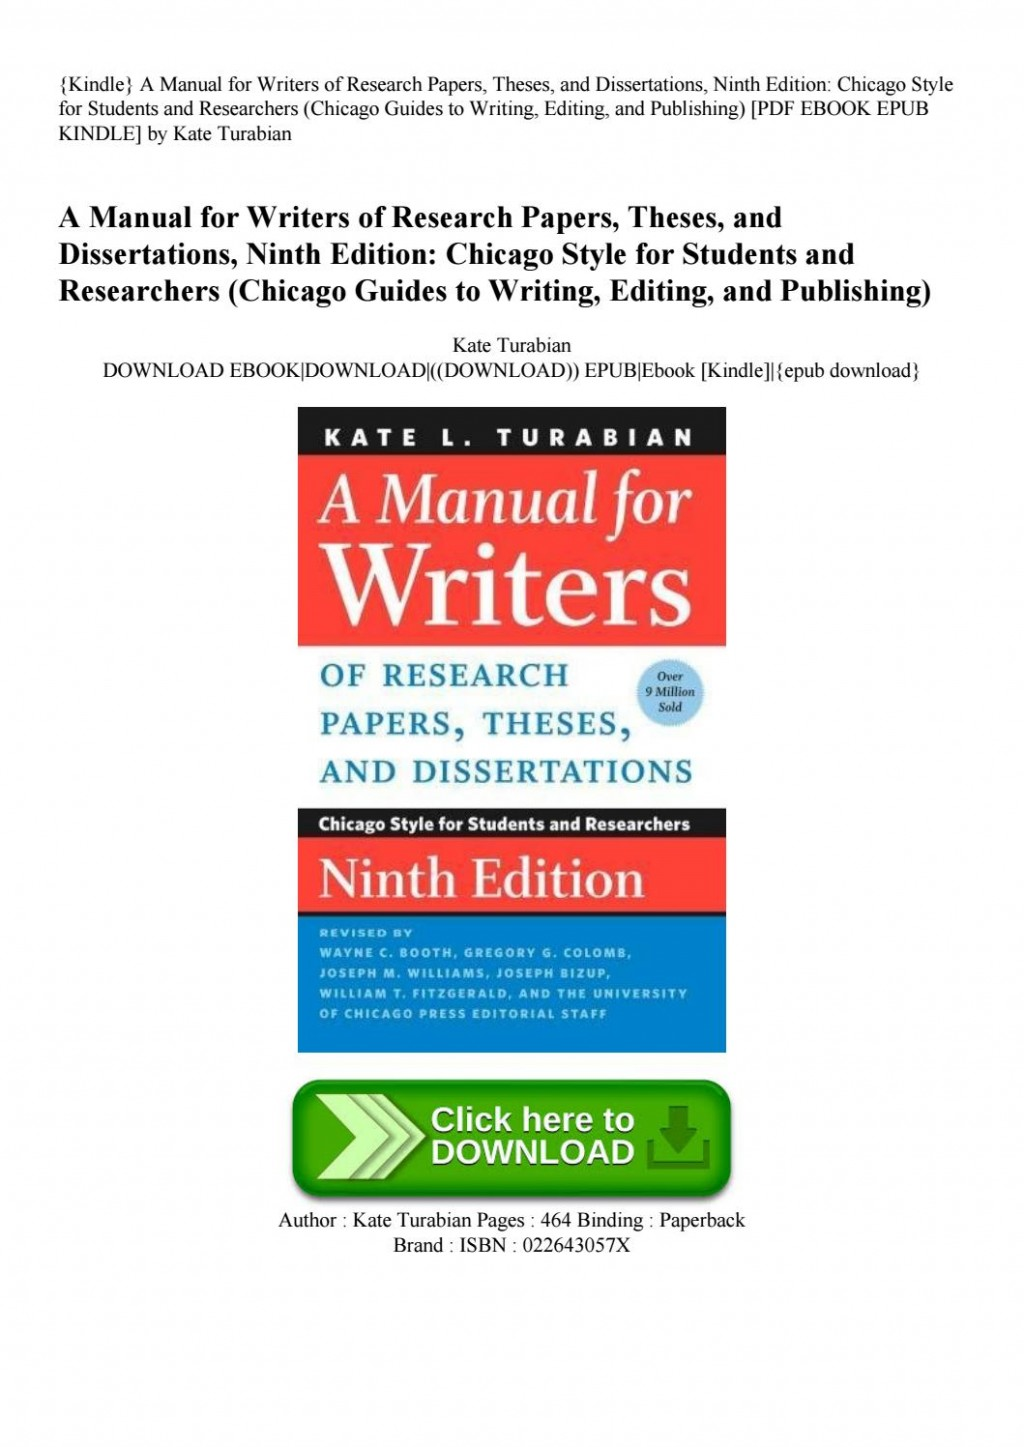 012 Research Paper Manual For Writers Of Papers Theses And Dissertations Page 1 Magnificent A 8th Ed Pdf Large